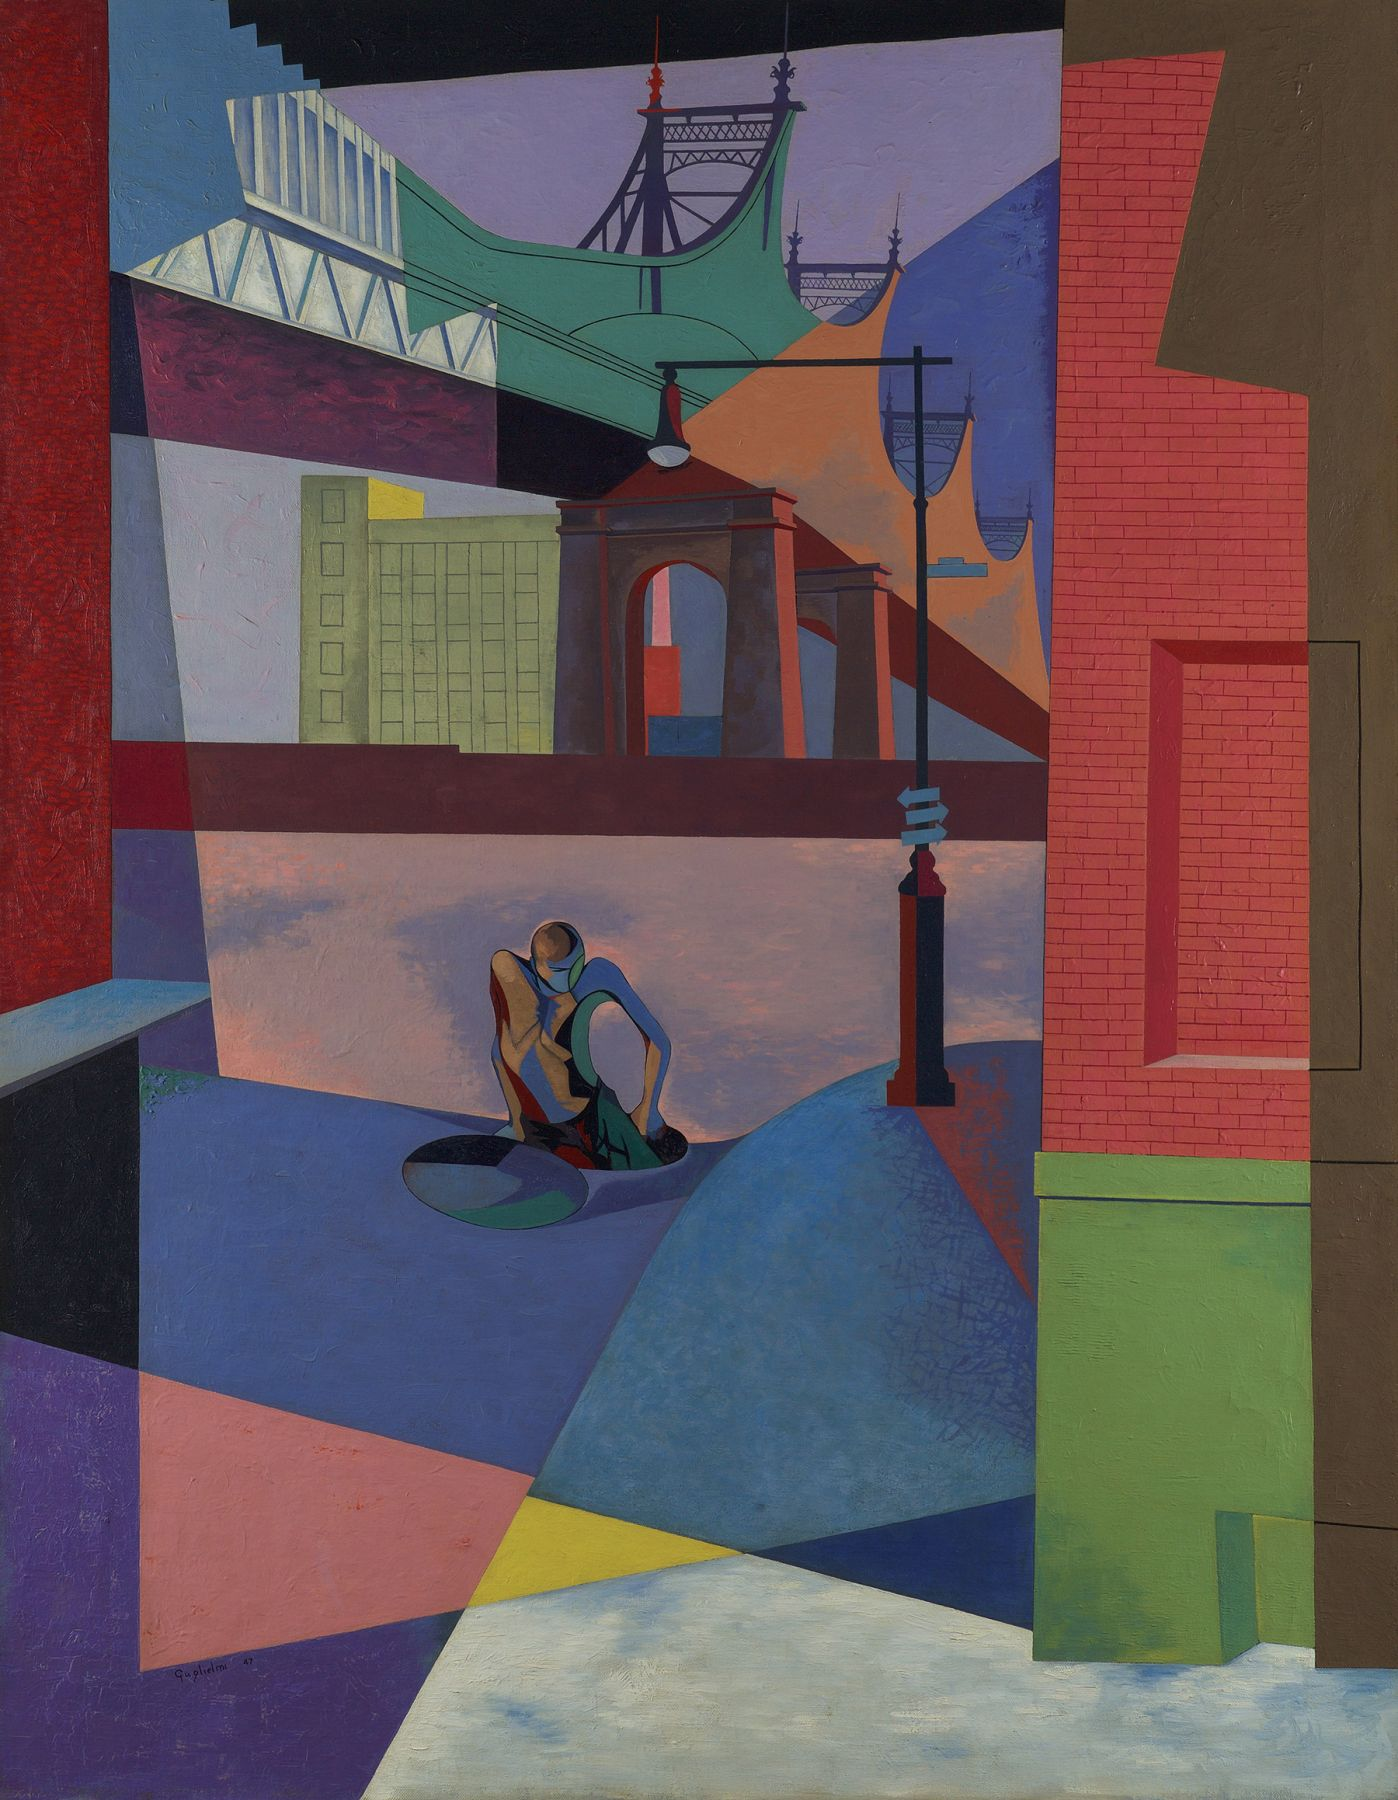 O. Louis Guglielmi (1906-1956), Elements of the Street, 1947